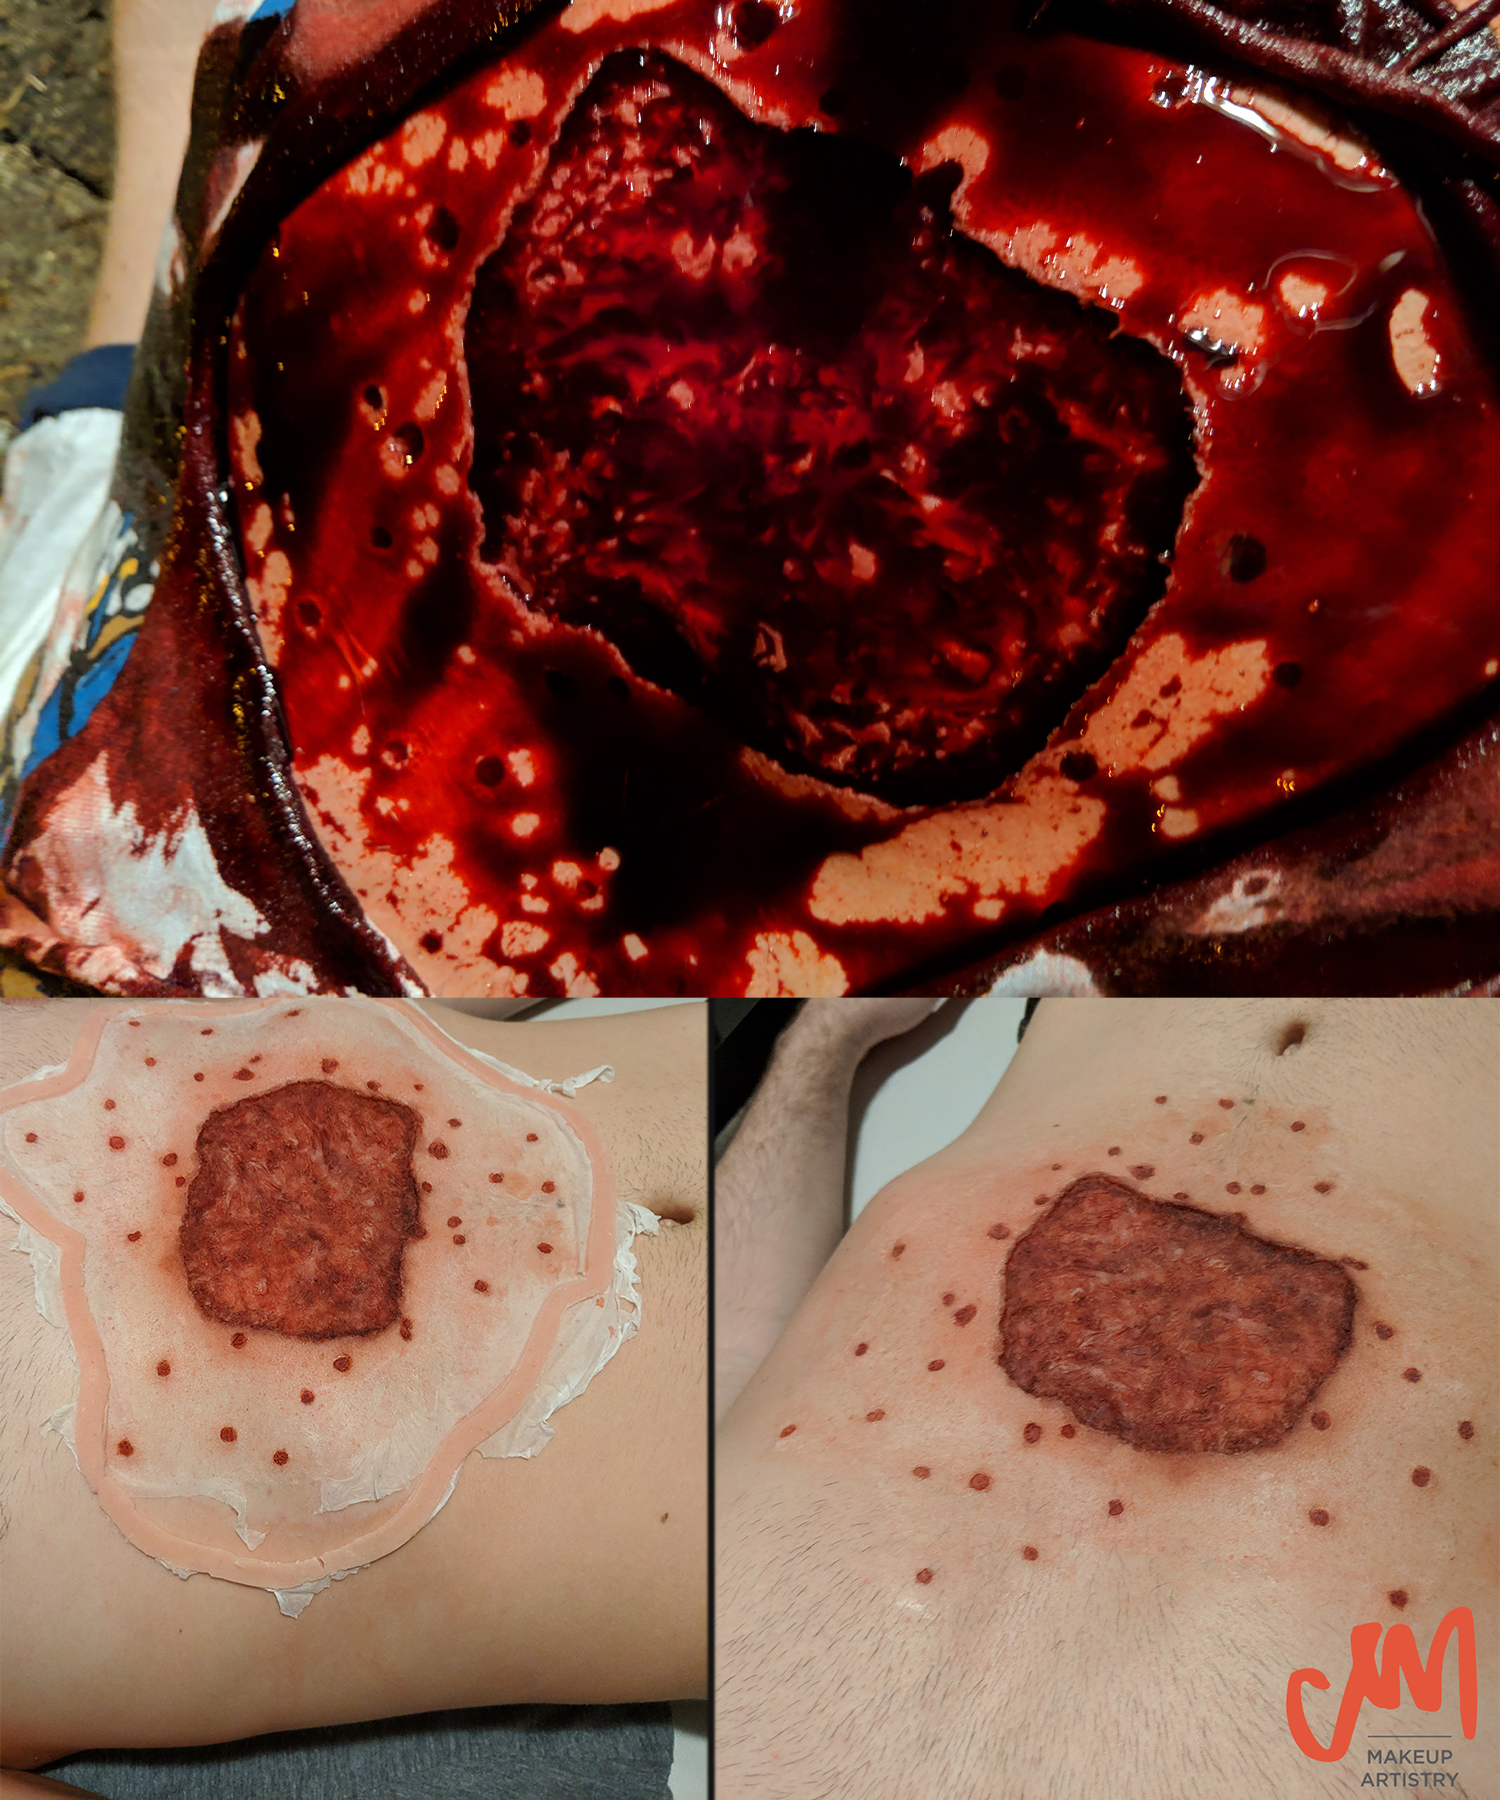 shotgun wound, encapsulated silicone, special effects makeup, blood and gore, makeup effects, sfx makeup, claire mints makeup artistry